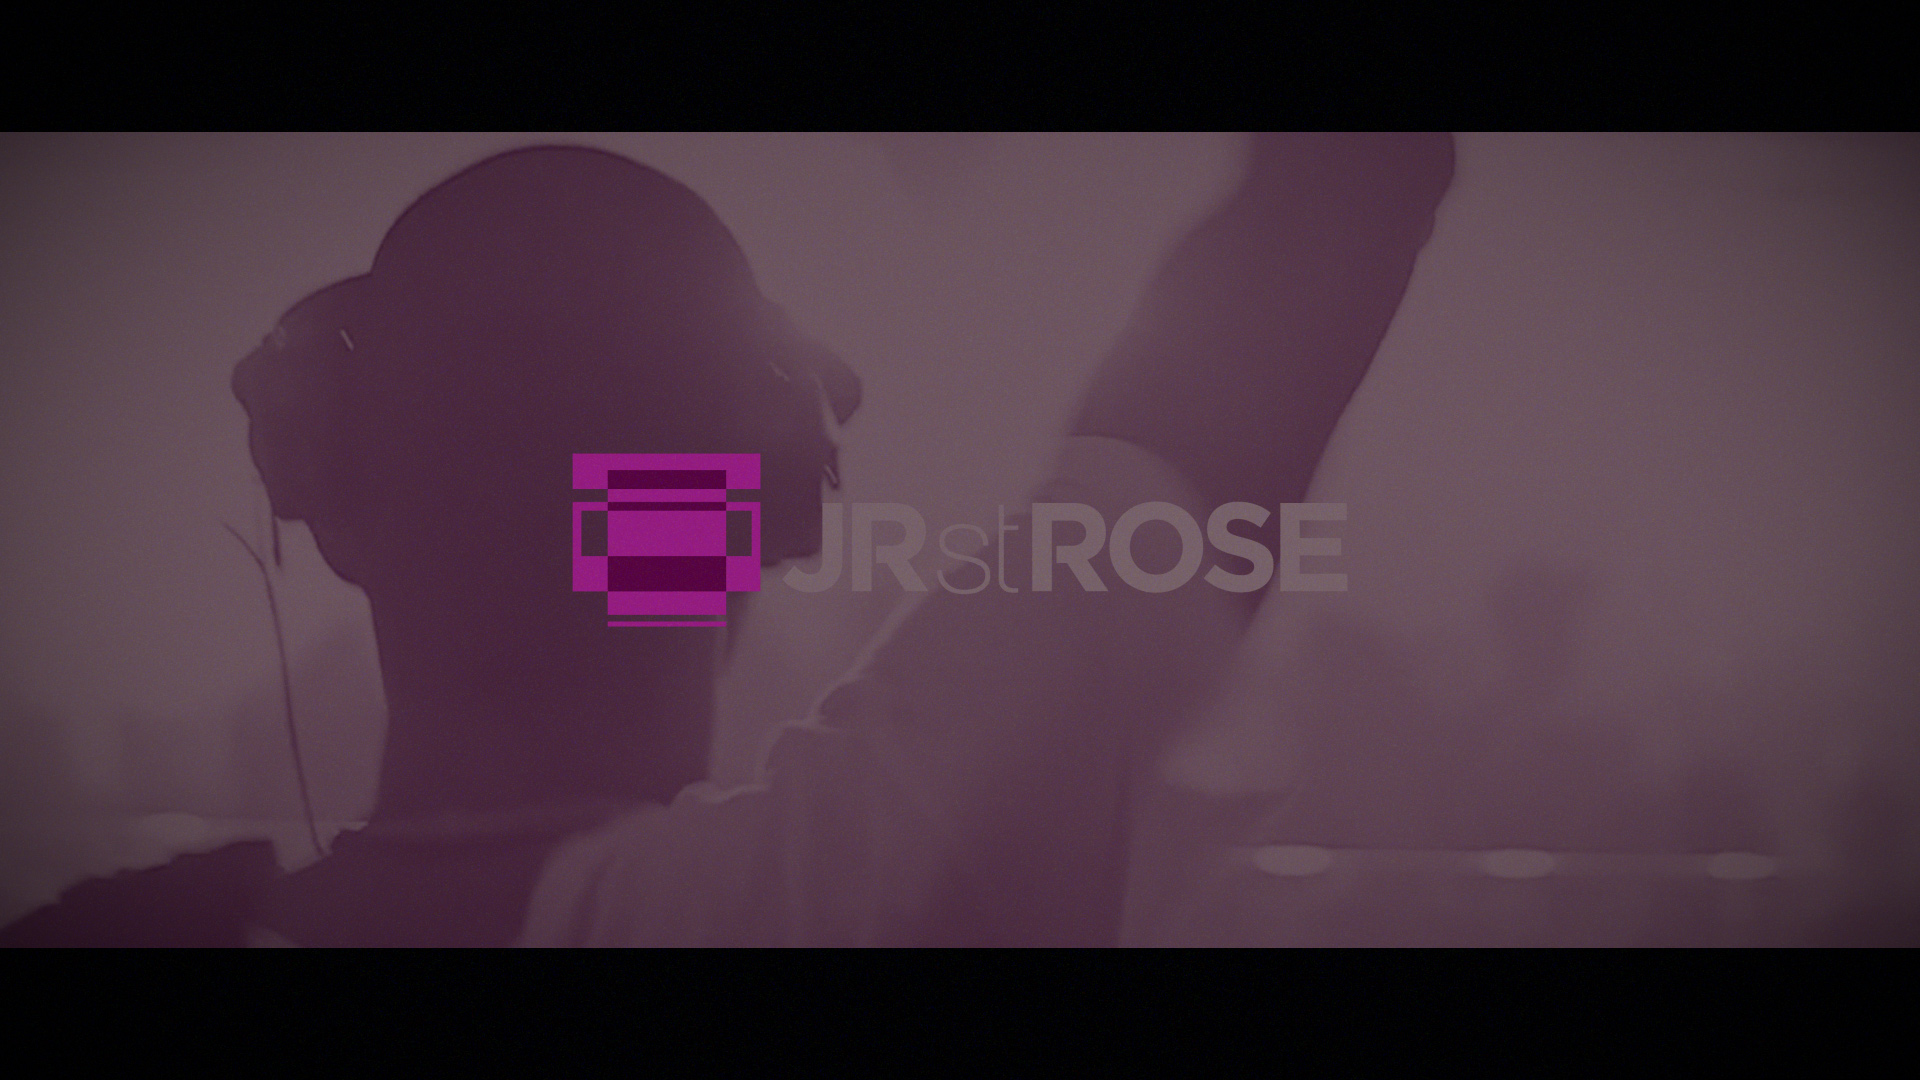 Motion Graphics Video / Jr St Rose